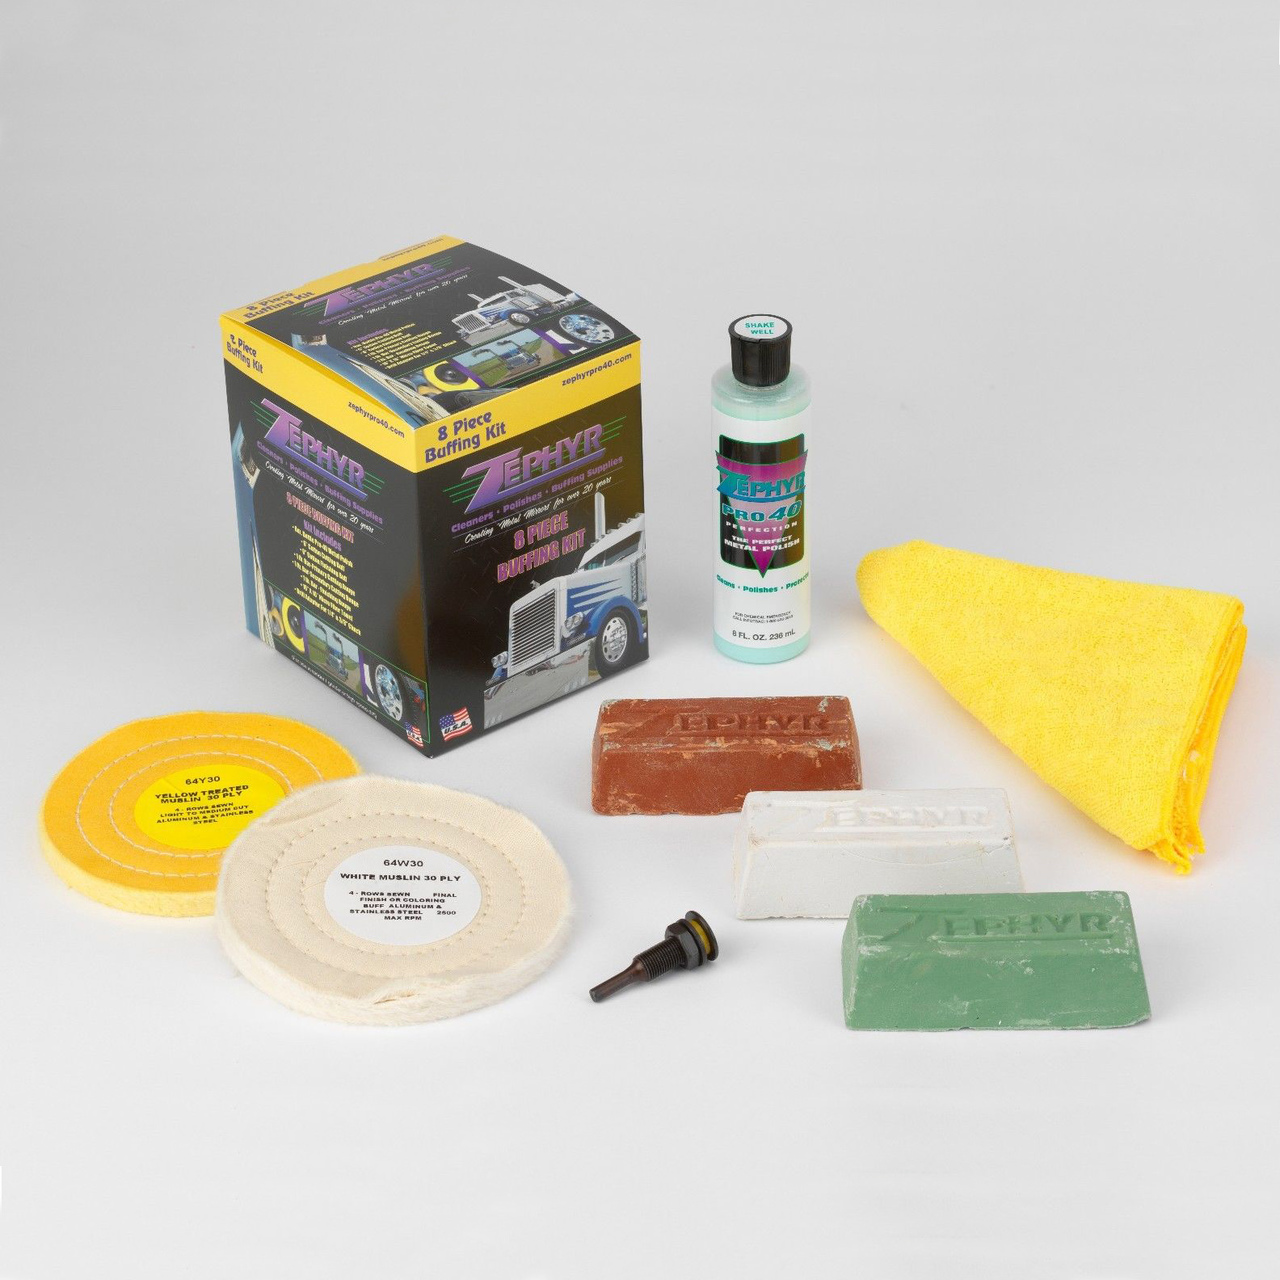 Zephyr (8 Piece) Buffing Kit